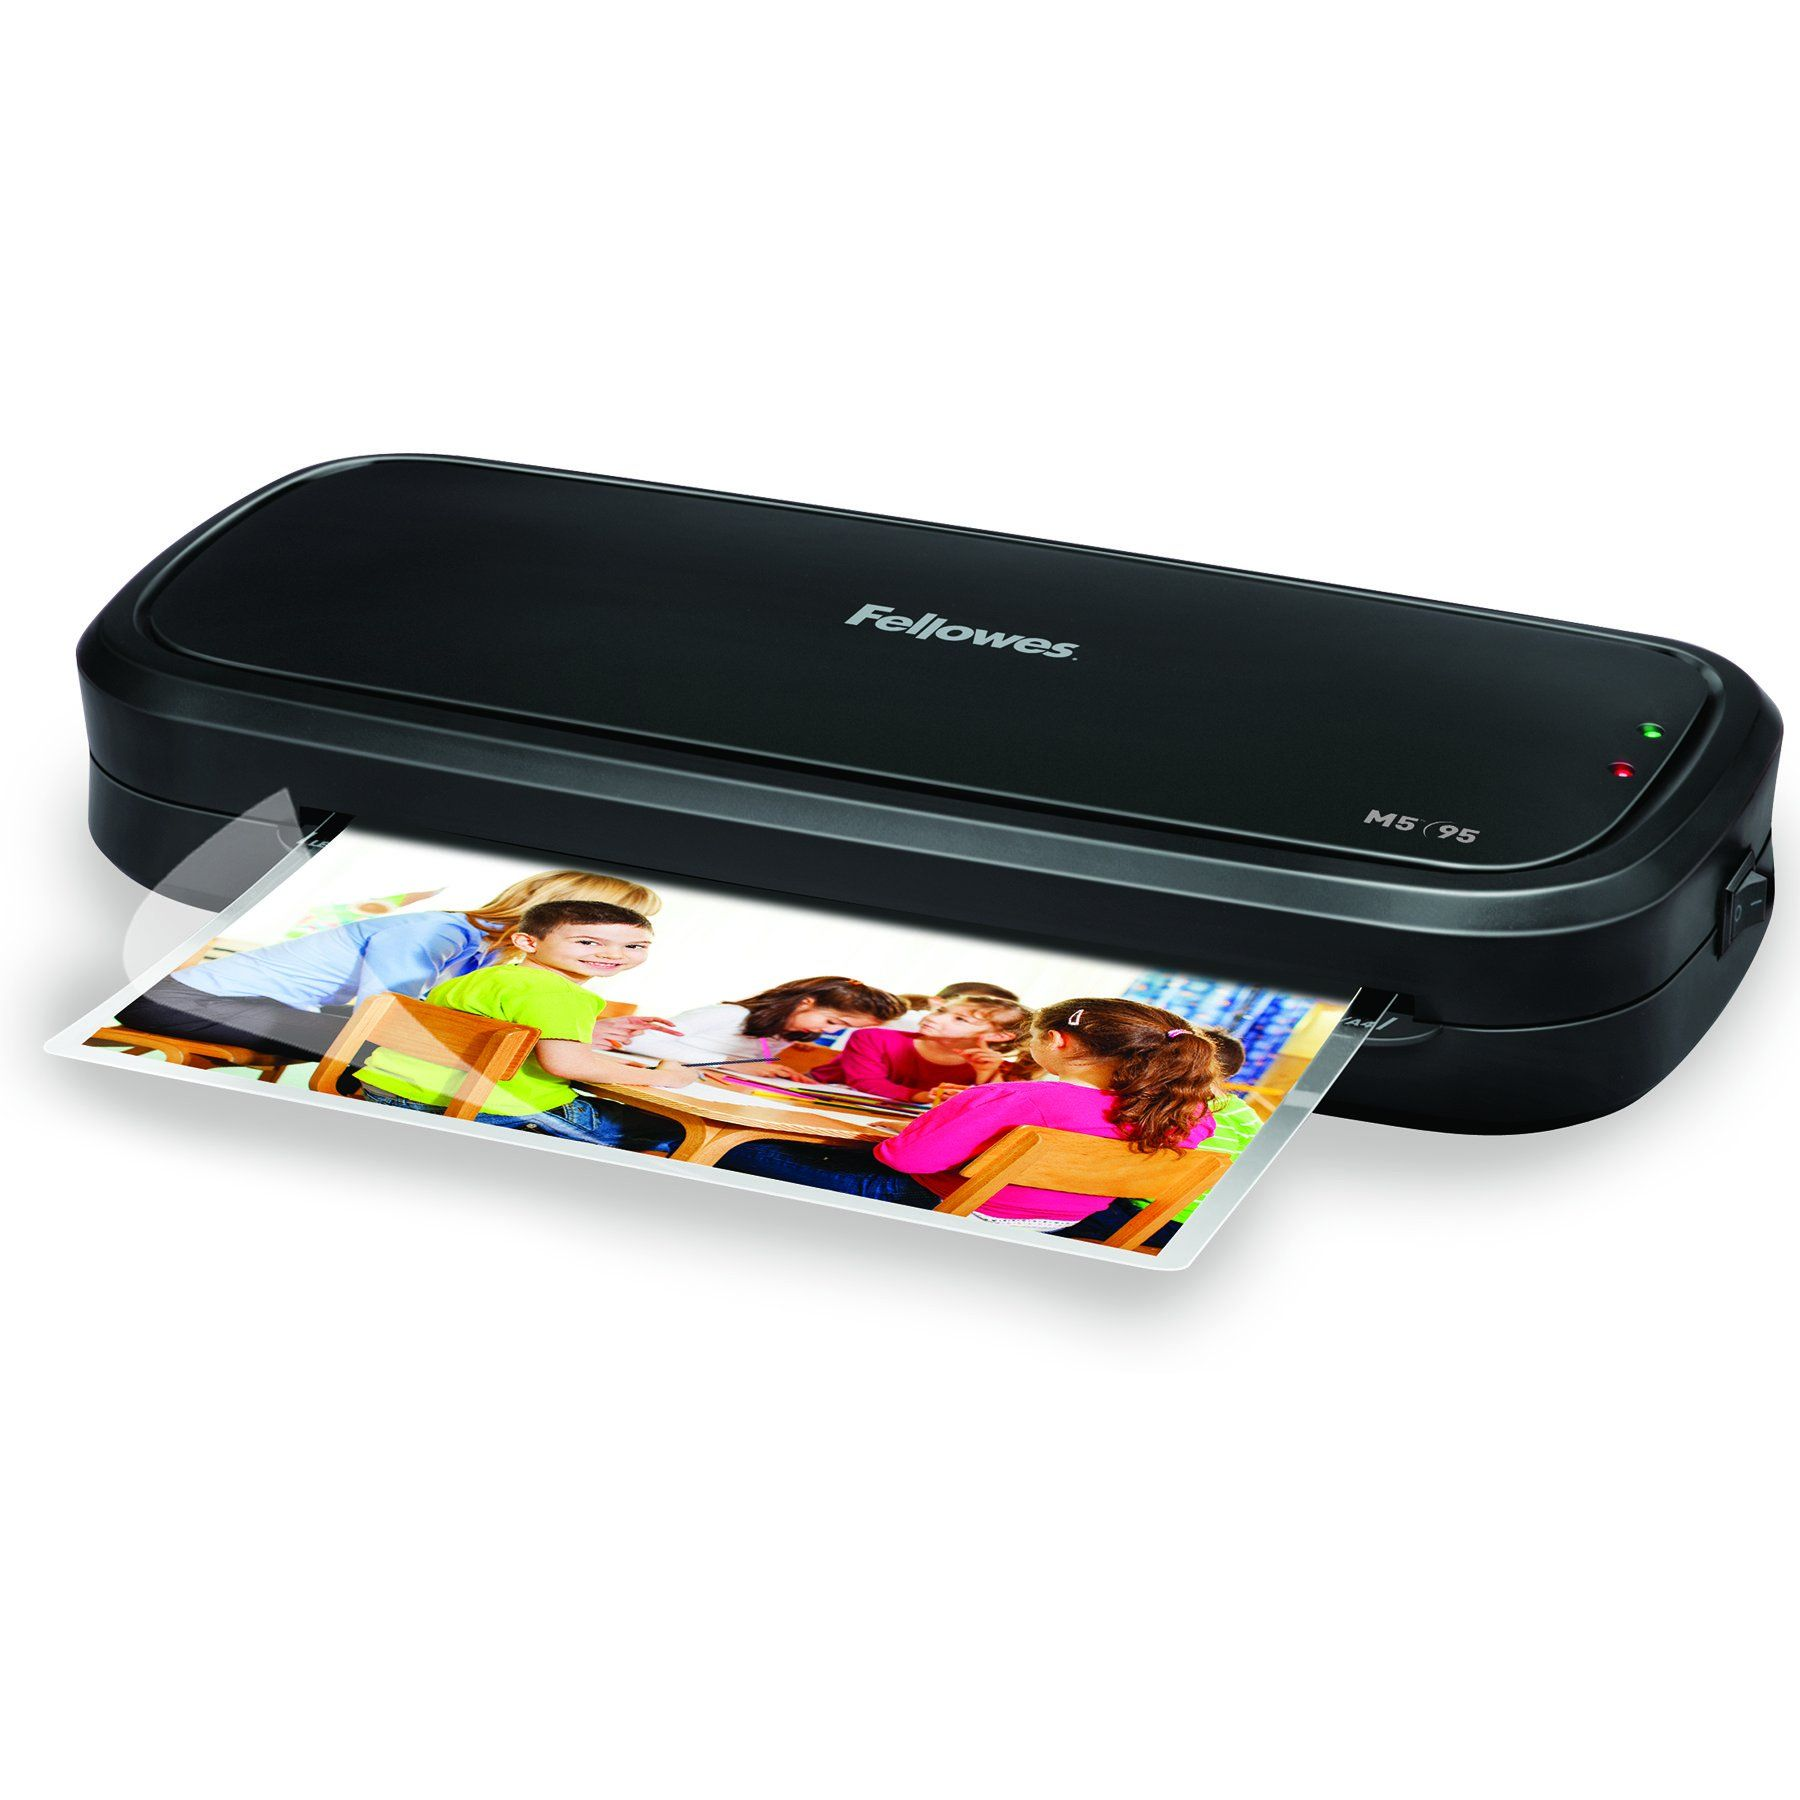 Fellowes Laminator M5 95 Quick Warm Up Laminating Machine With Laminating Pouches Kit M5 95 Fellowes Laminators Starter Kit